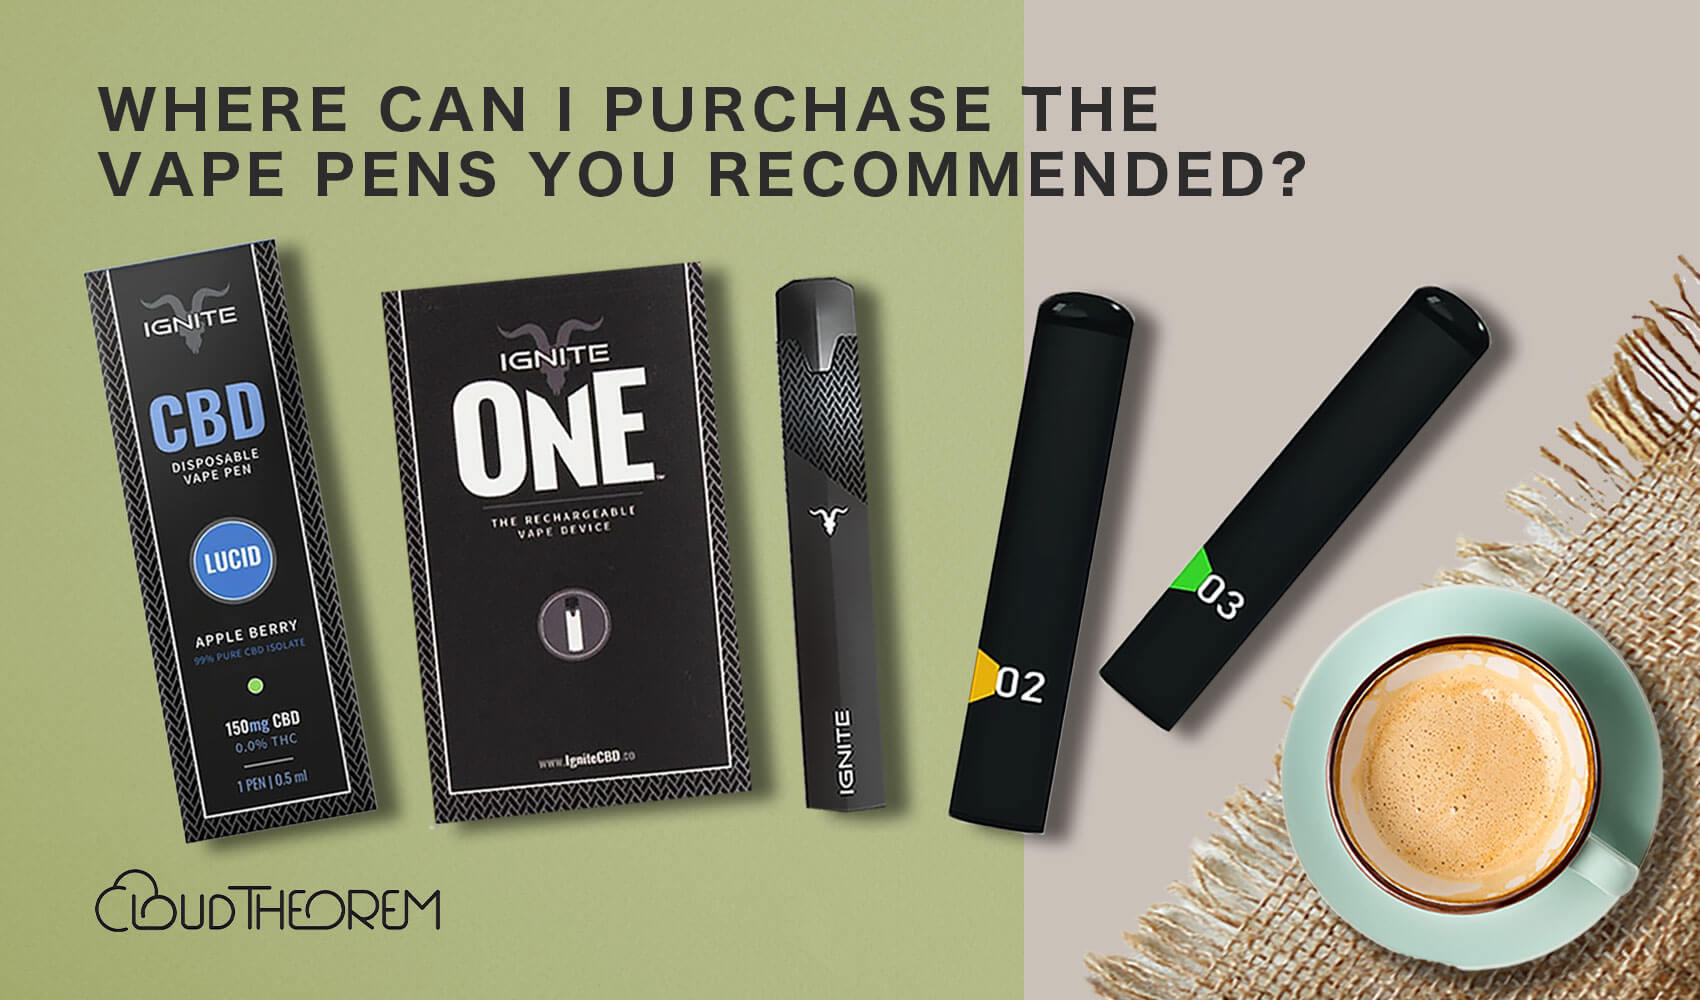 Where can I purchase the vape pens you recommended? | Cloudtheorem